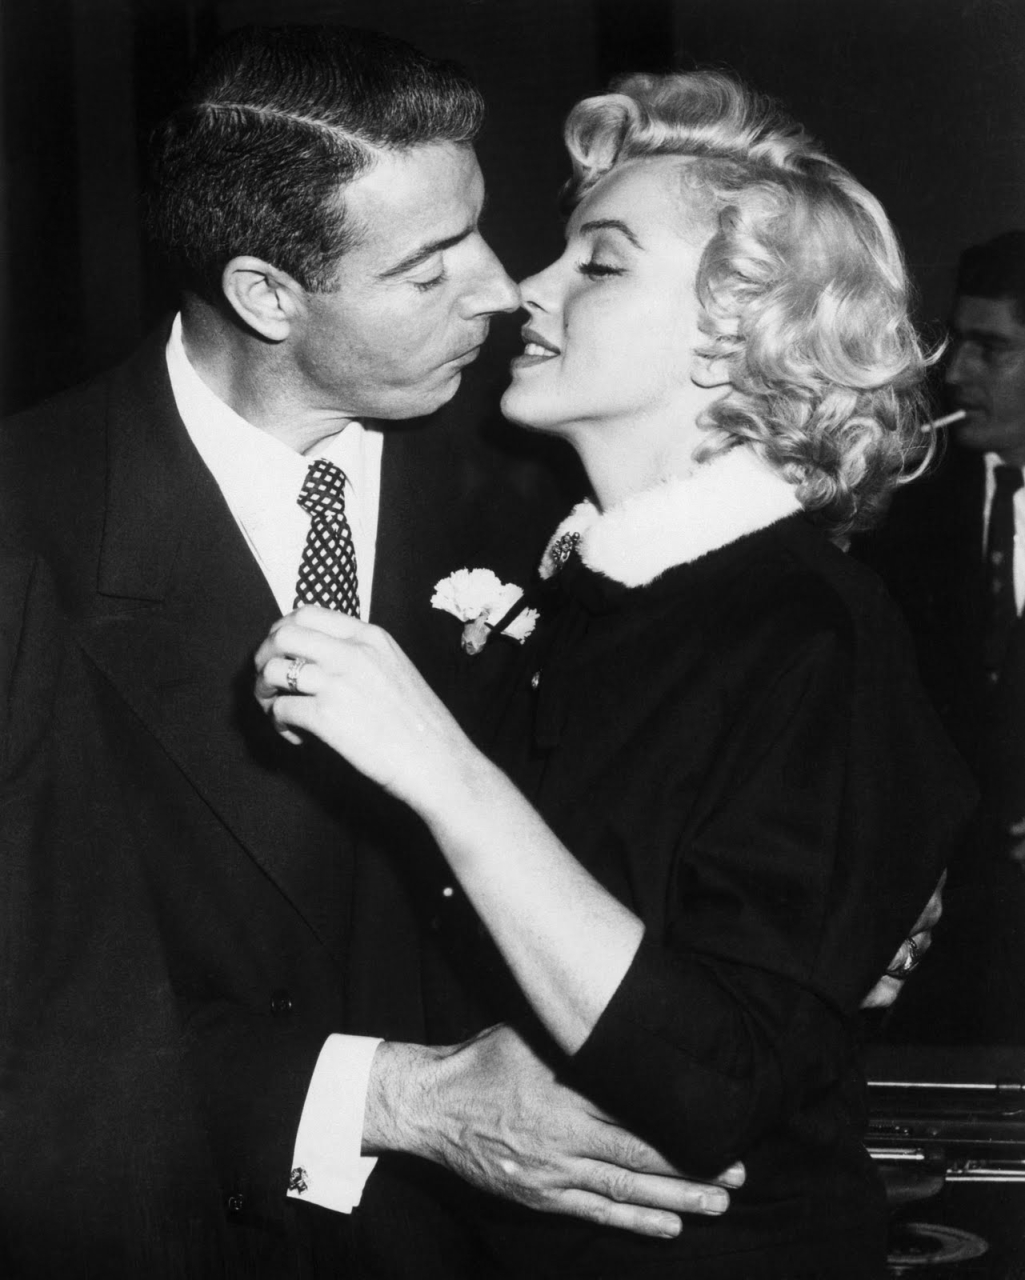 http://1.bp.blogspot.com/-WkcdhCLf6MI/Tw_5Yp7z8NI/AAAAAAAADuQ/bXUJNCH5g0E/s1600/Marilyn+Monroe+and+Joe+DiMaggio+-+Marilyn+Monroe+-+Madness+and+her+last+days.jpg